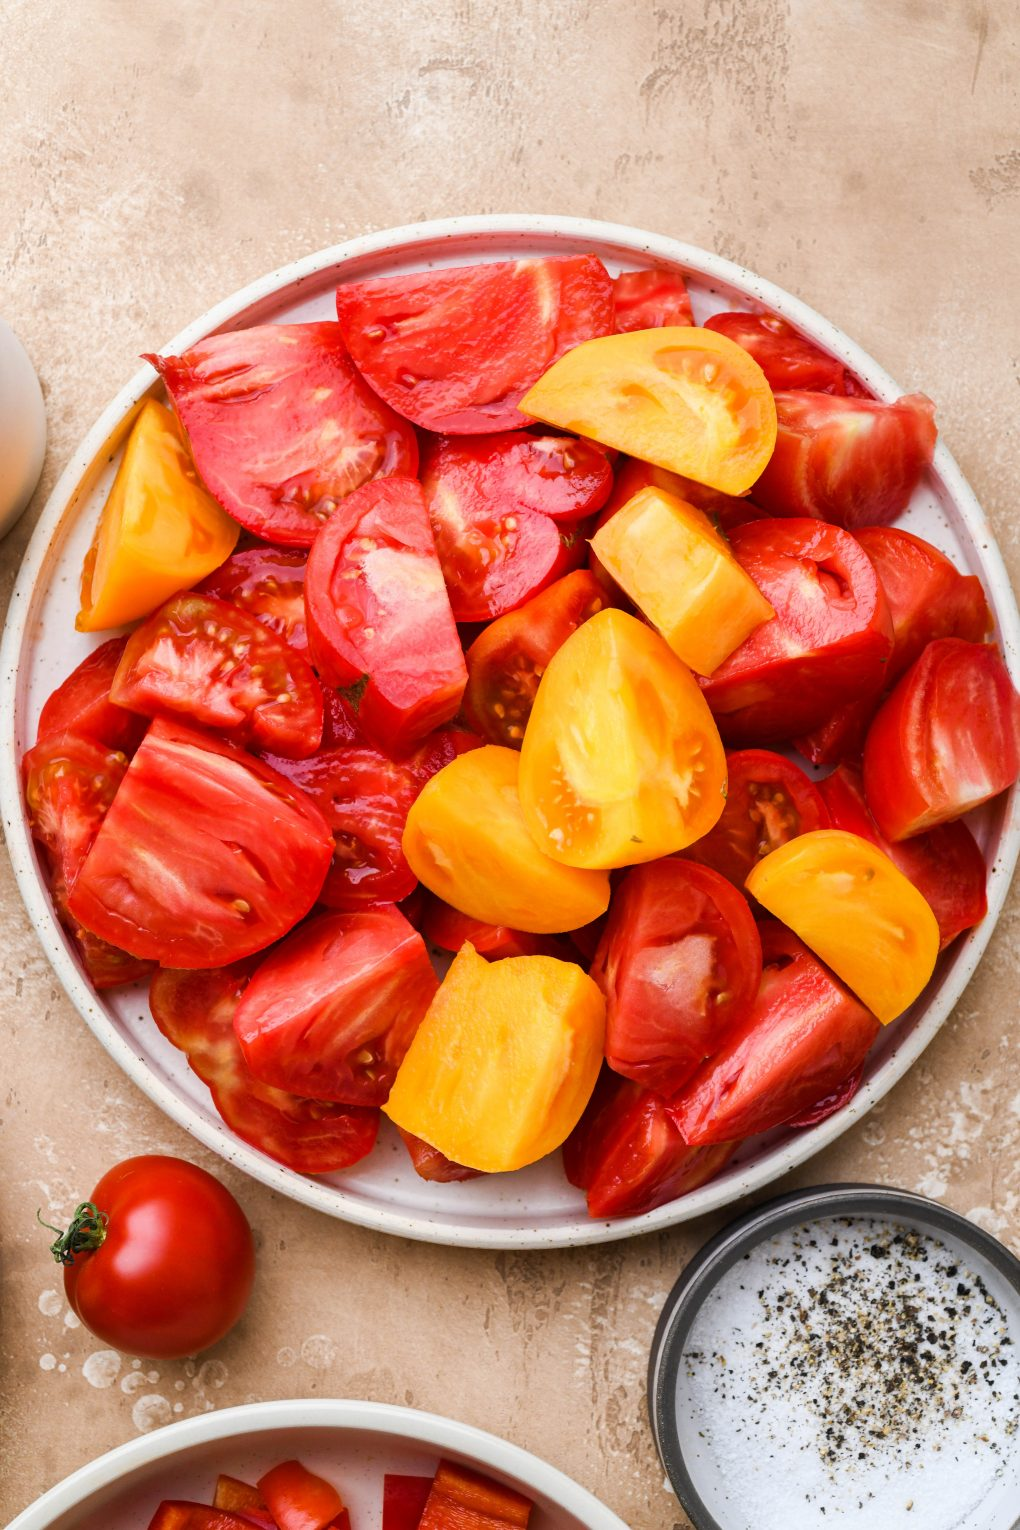 Overhead shot of a large speckled plate filled with red and yellow chopped heirloom tomatoes. On a light brown speckled background.